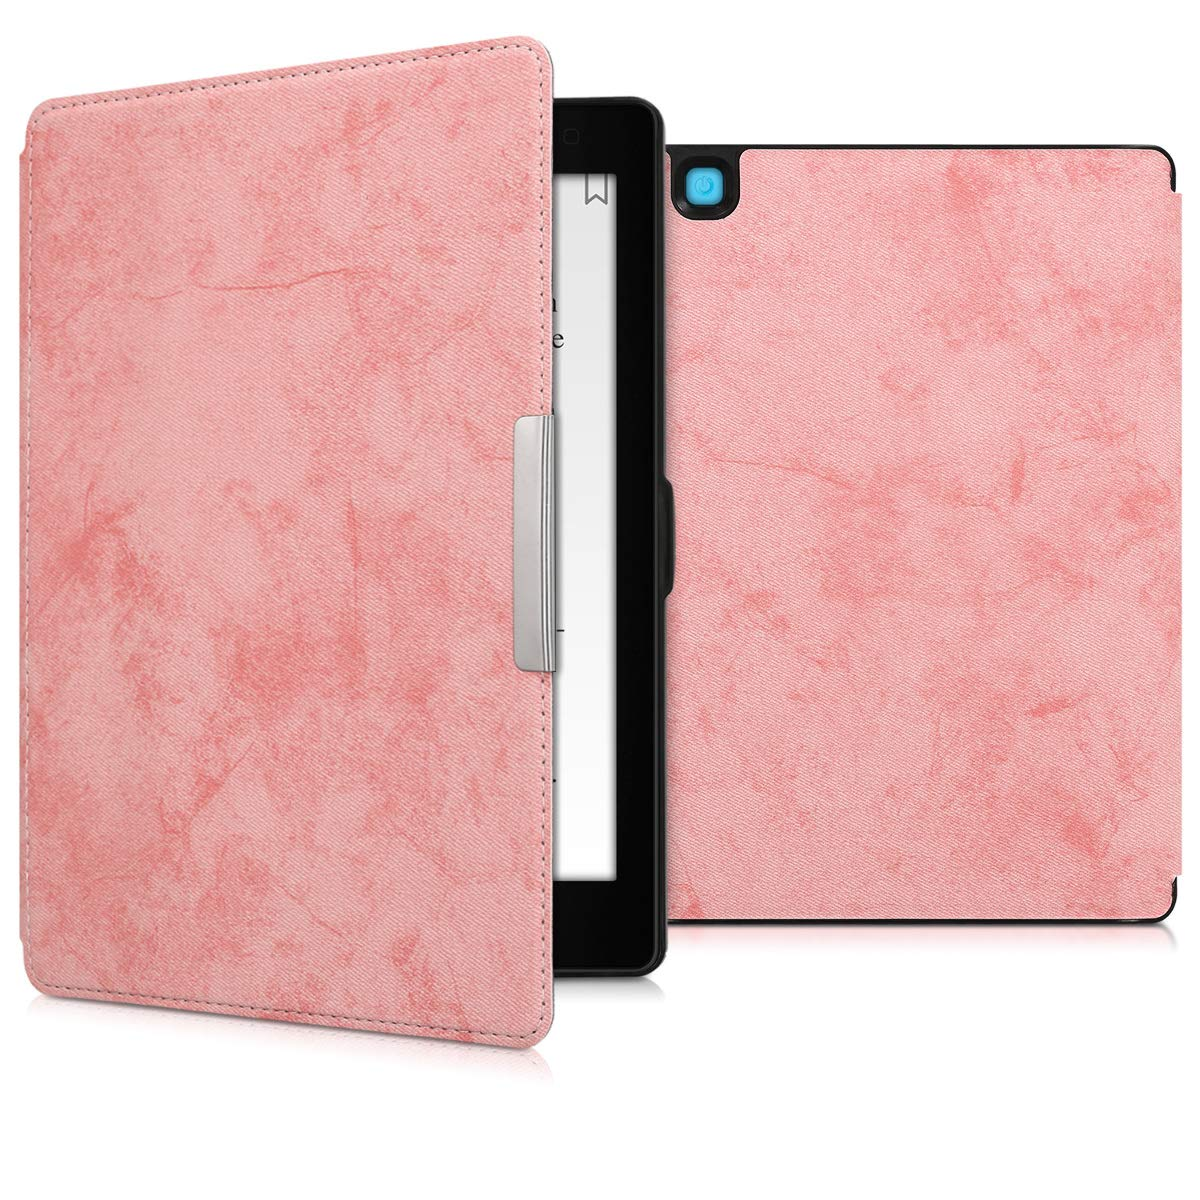 kwmobile Case for Kobo Aura ONE - Book Style PU Leather Protective e-Reader Cover Folio Case - Light Pink